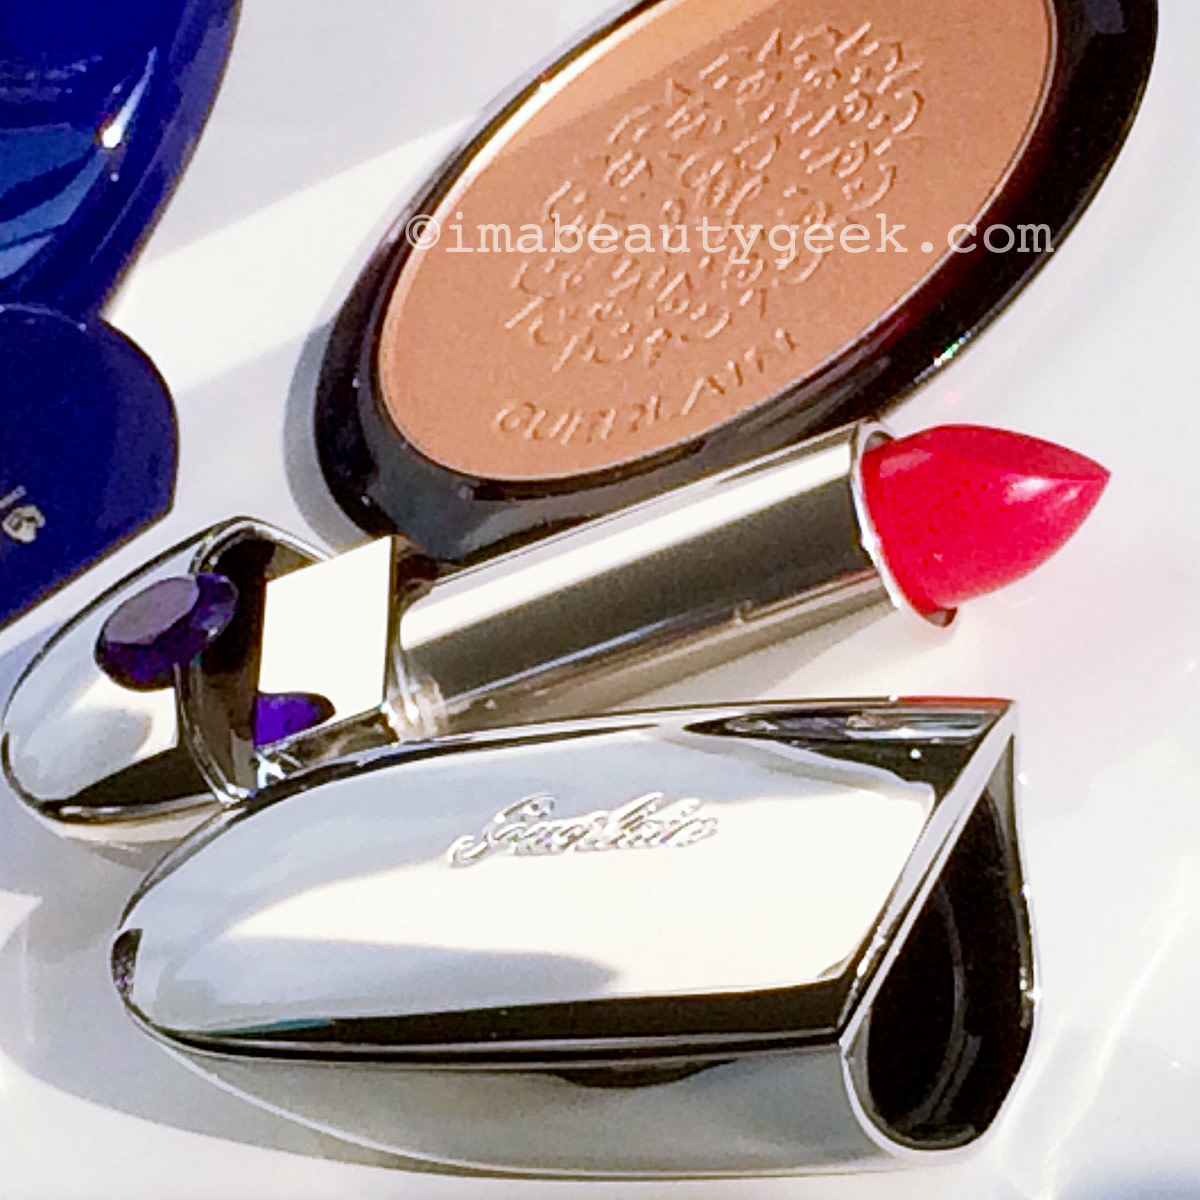 Guerlain holiday 2016 Rouge G 821 Rouge Saphir